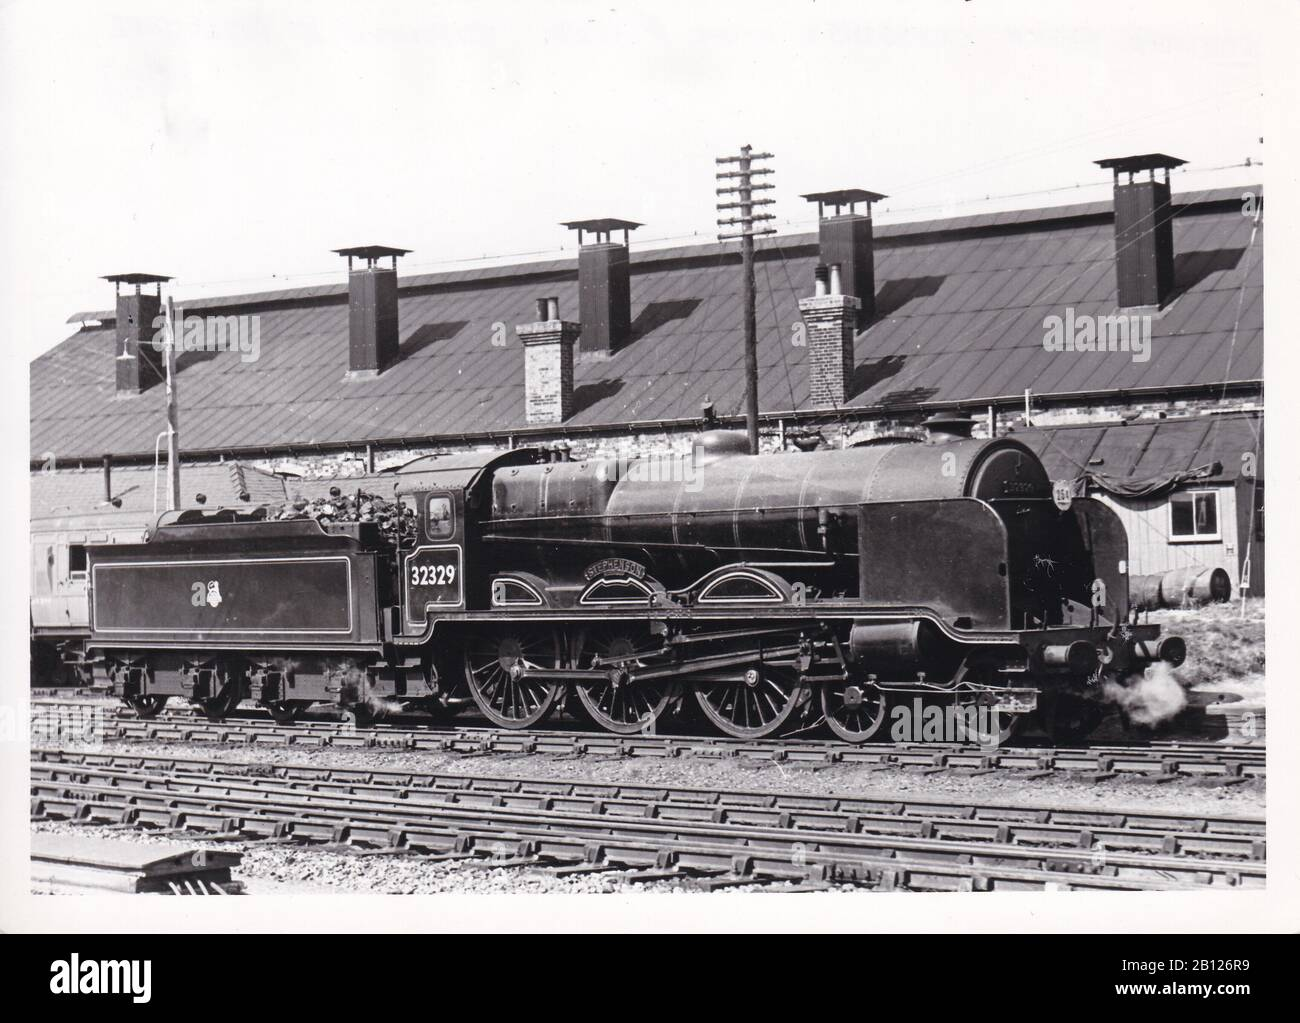 Vintage Black And White Photo Of Steam Locomotive Train Southern Region Class N15x 4 6 0 32329 Stephenson At Basingstoke August 1952 Stock Photo Alamy